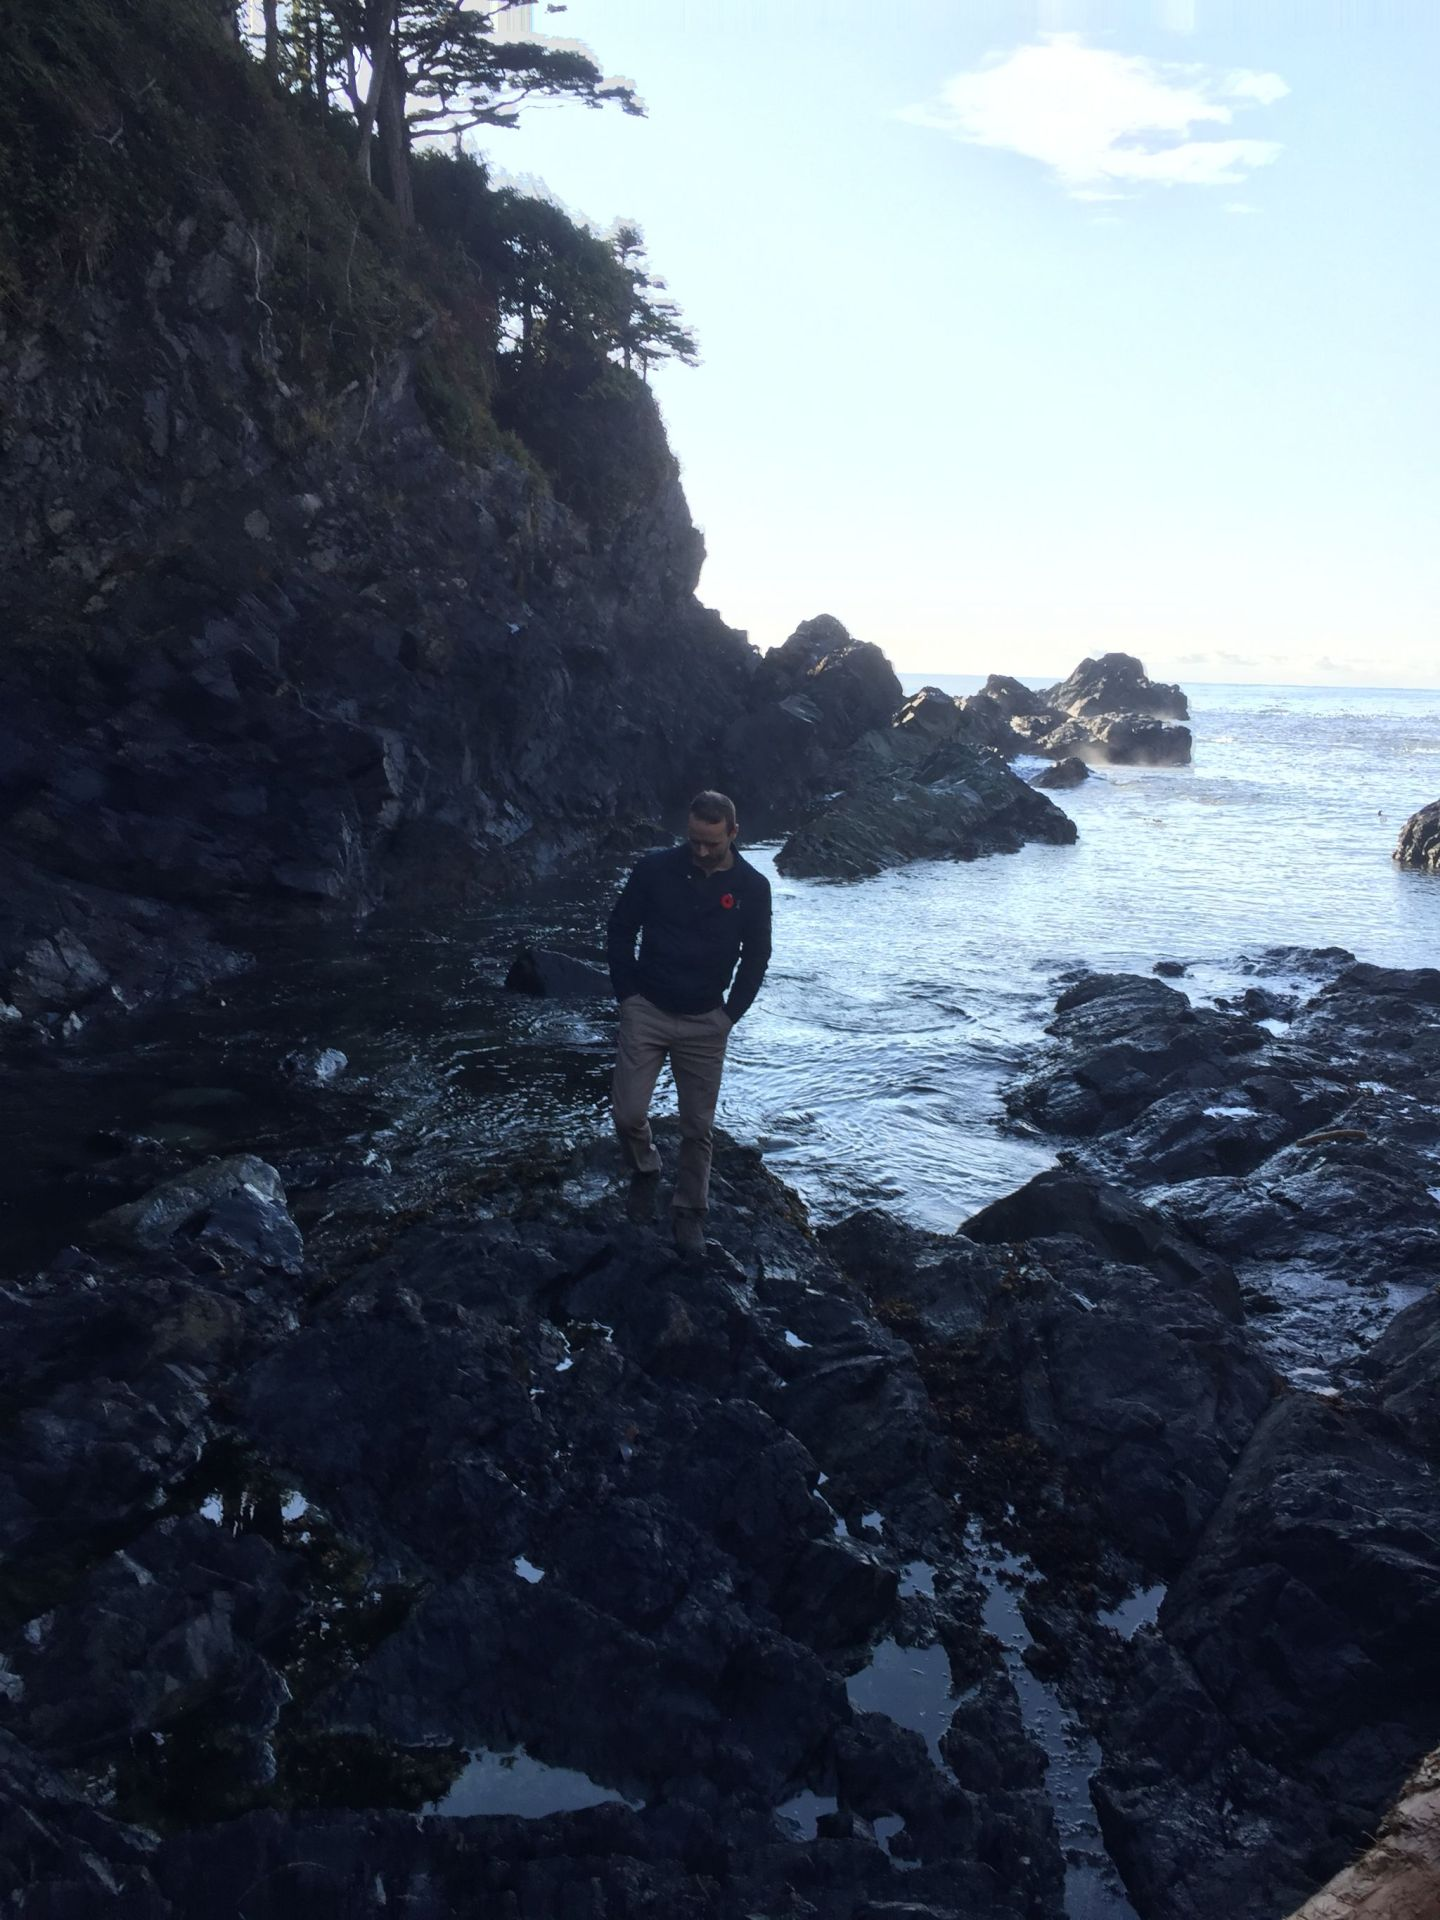 On the beach near Black Rock Resort, Ucluelet